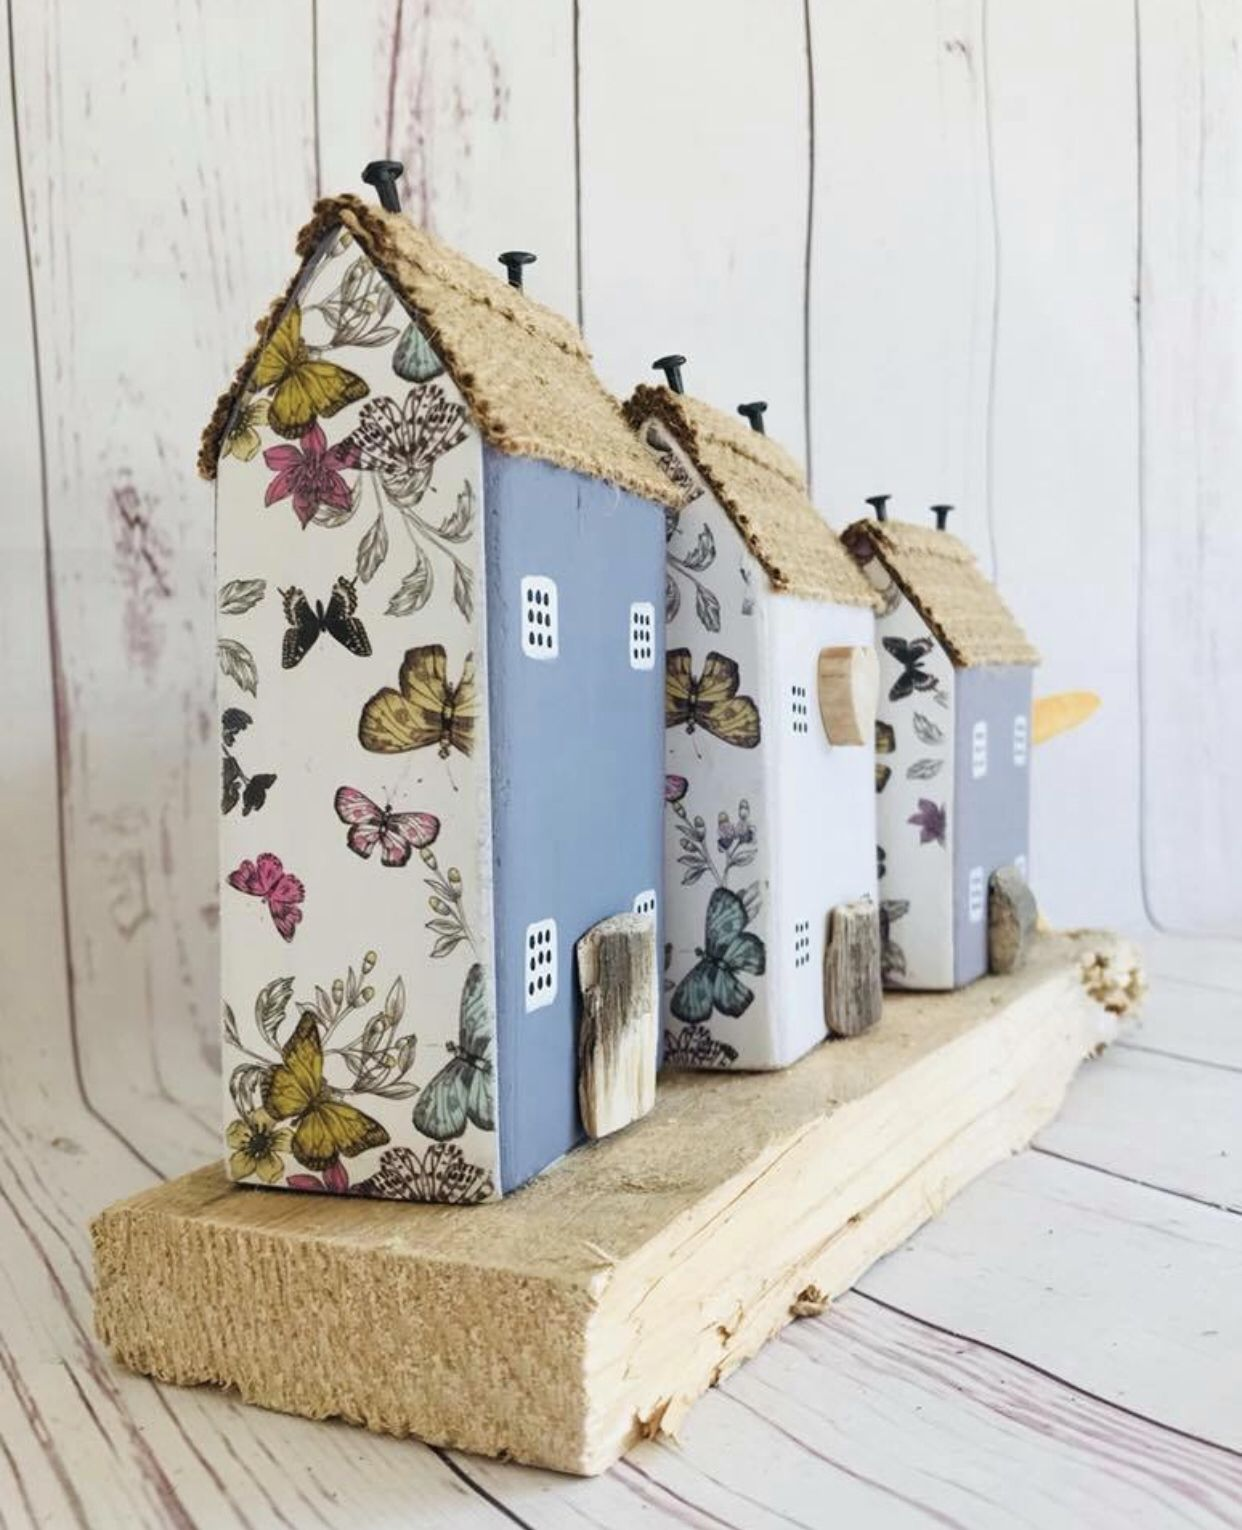 Pin By Katalin Nagyhazi On Decoracio Small Wooden House House Ornaments Driftwood Crafts